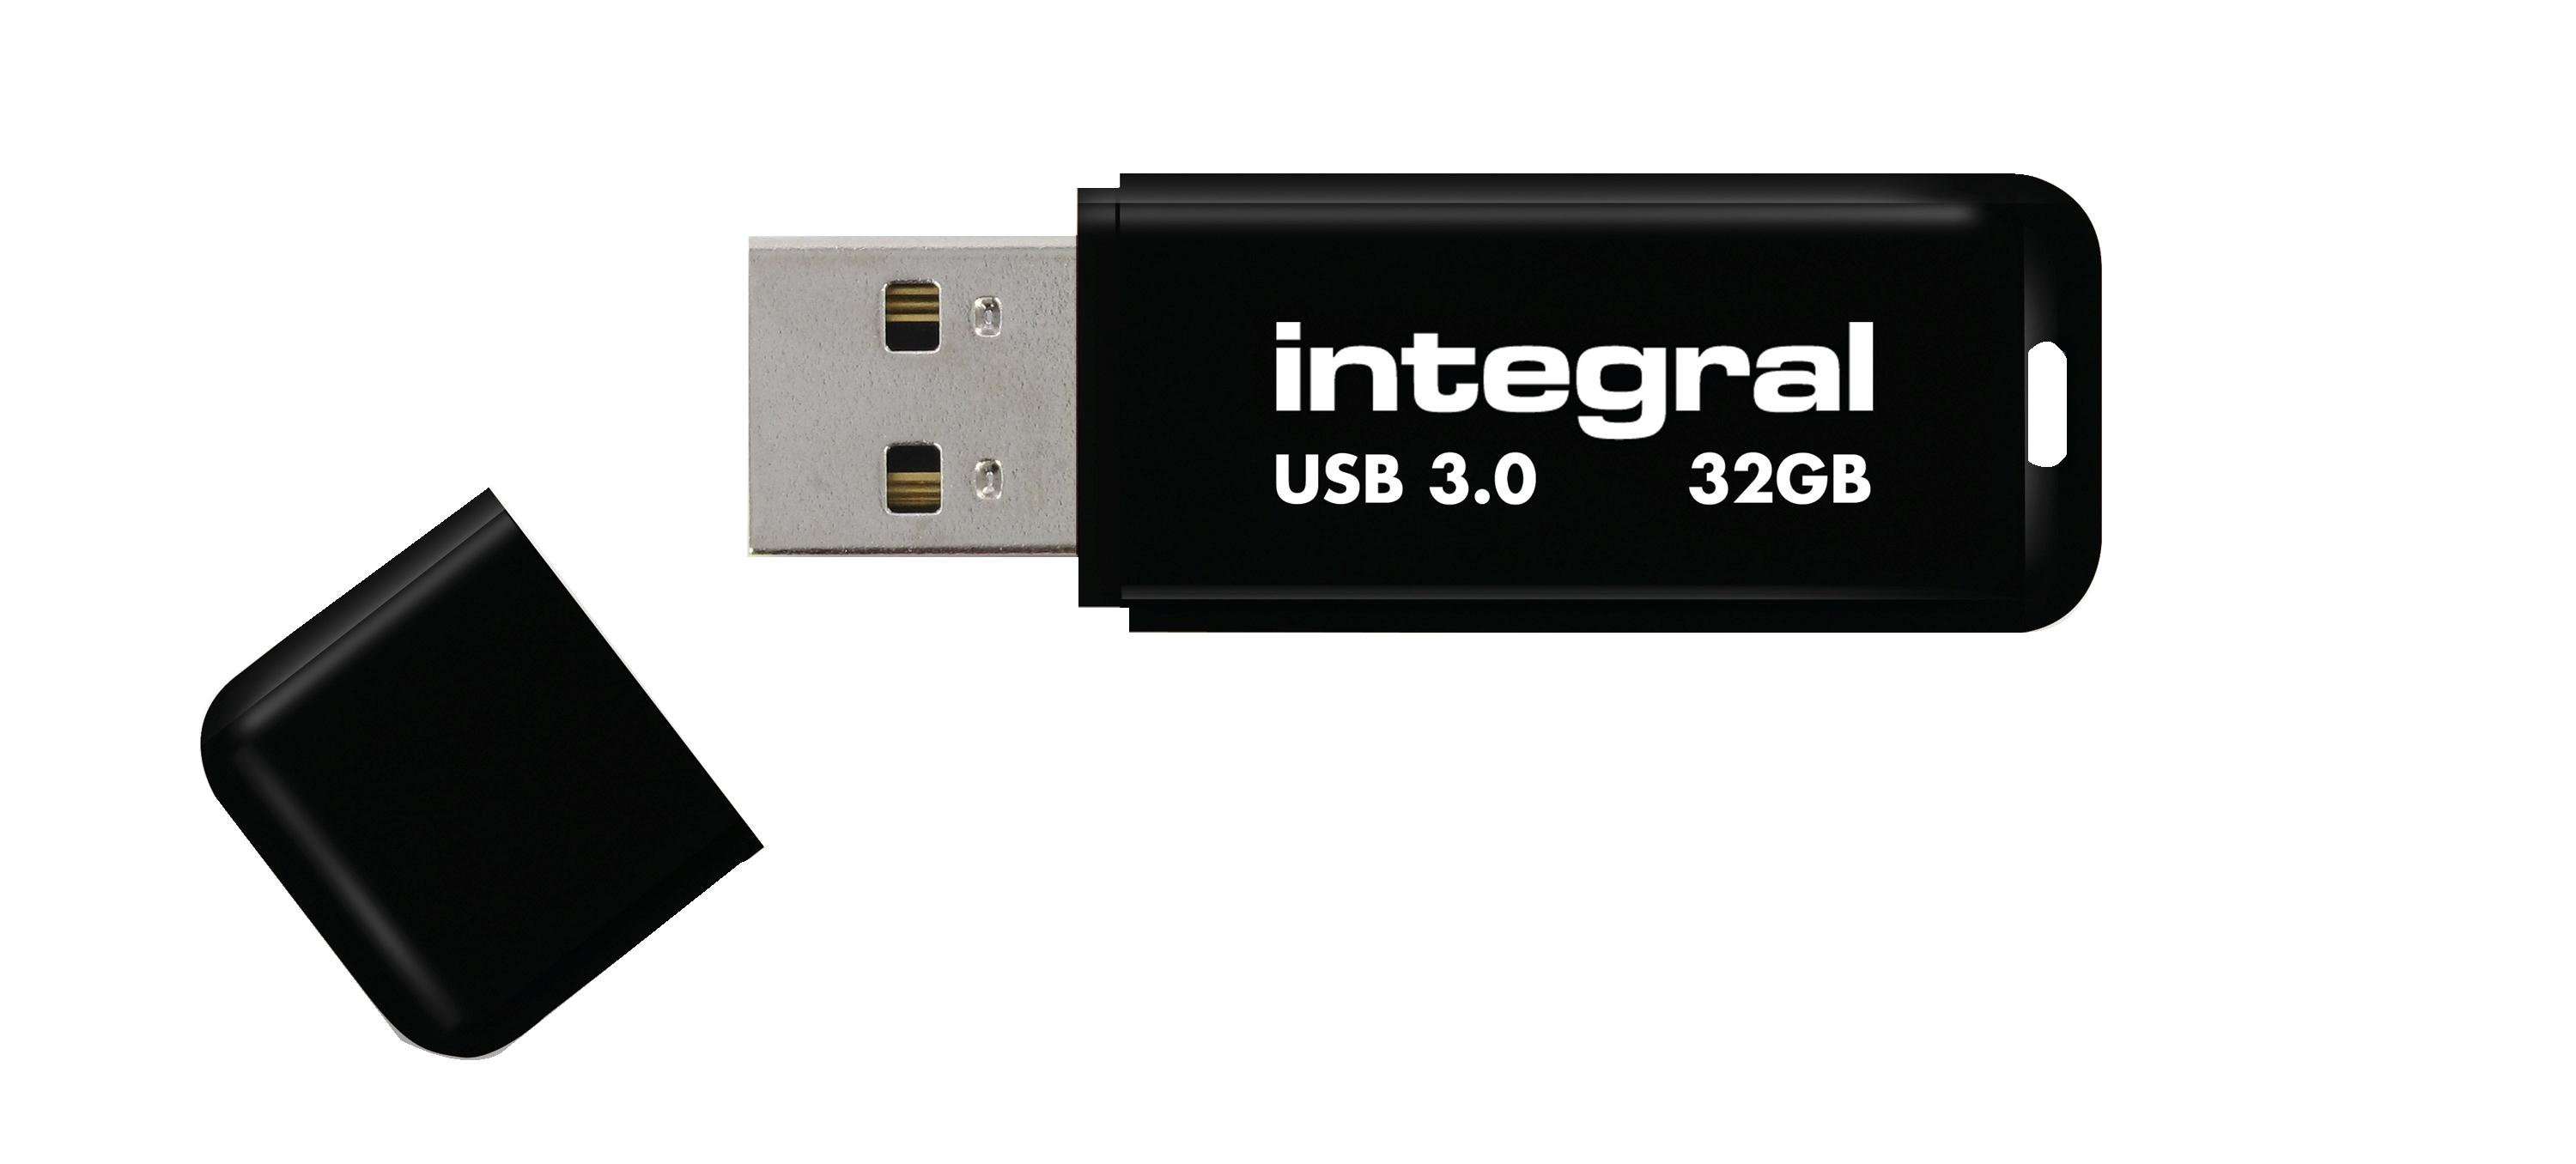 Integral Noir Flash Drive USB 3.0 32GB Ref INFD32GBNOIR3.0